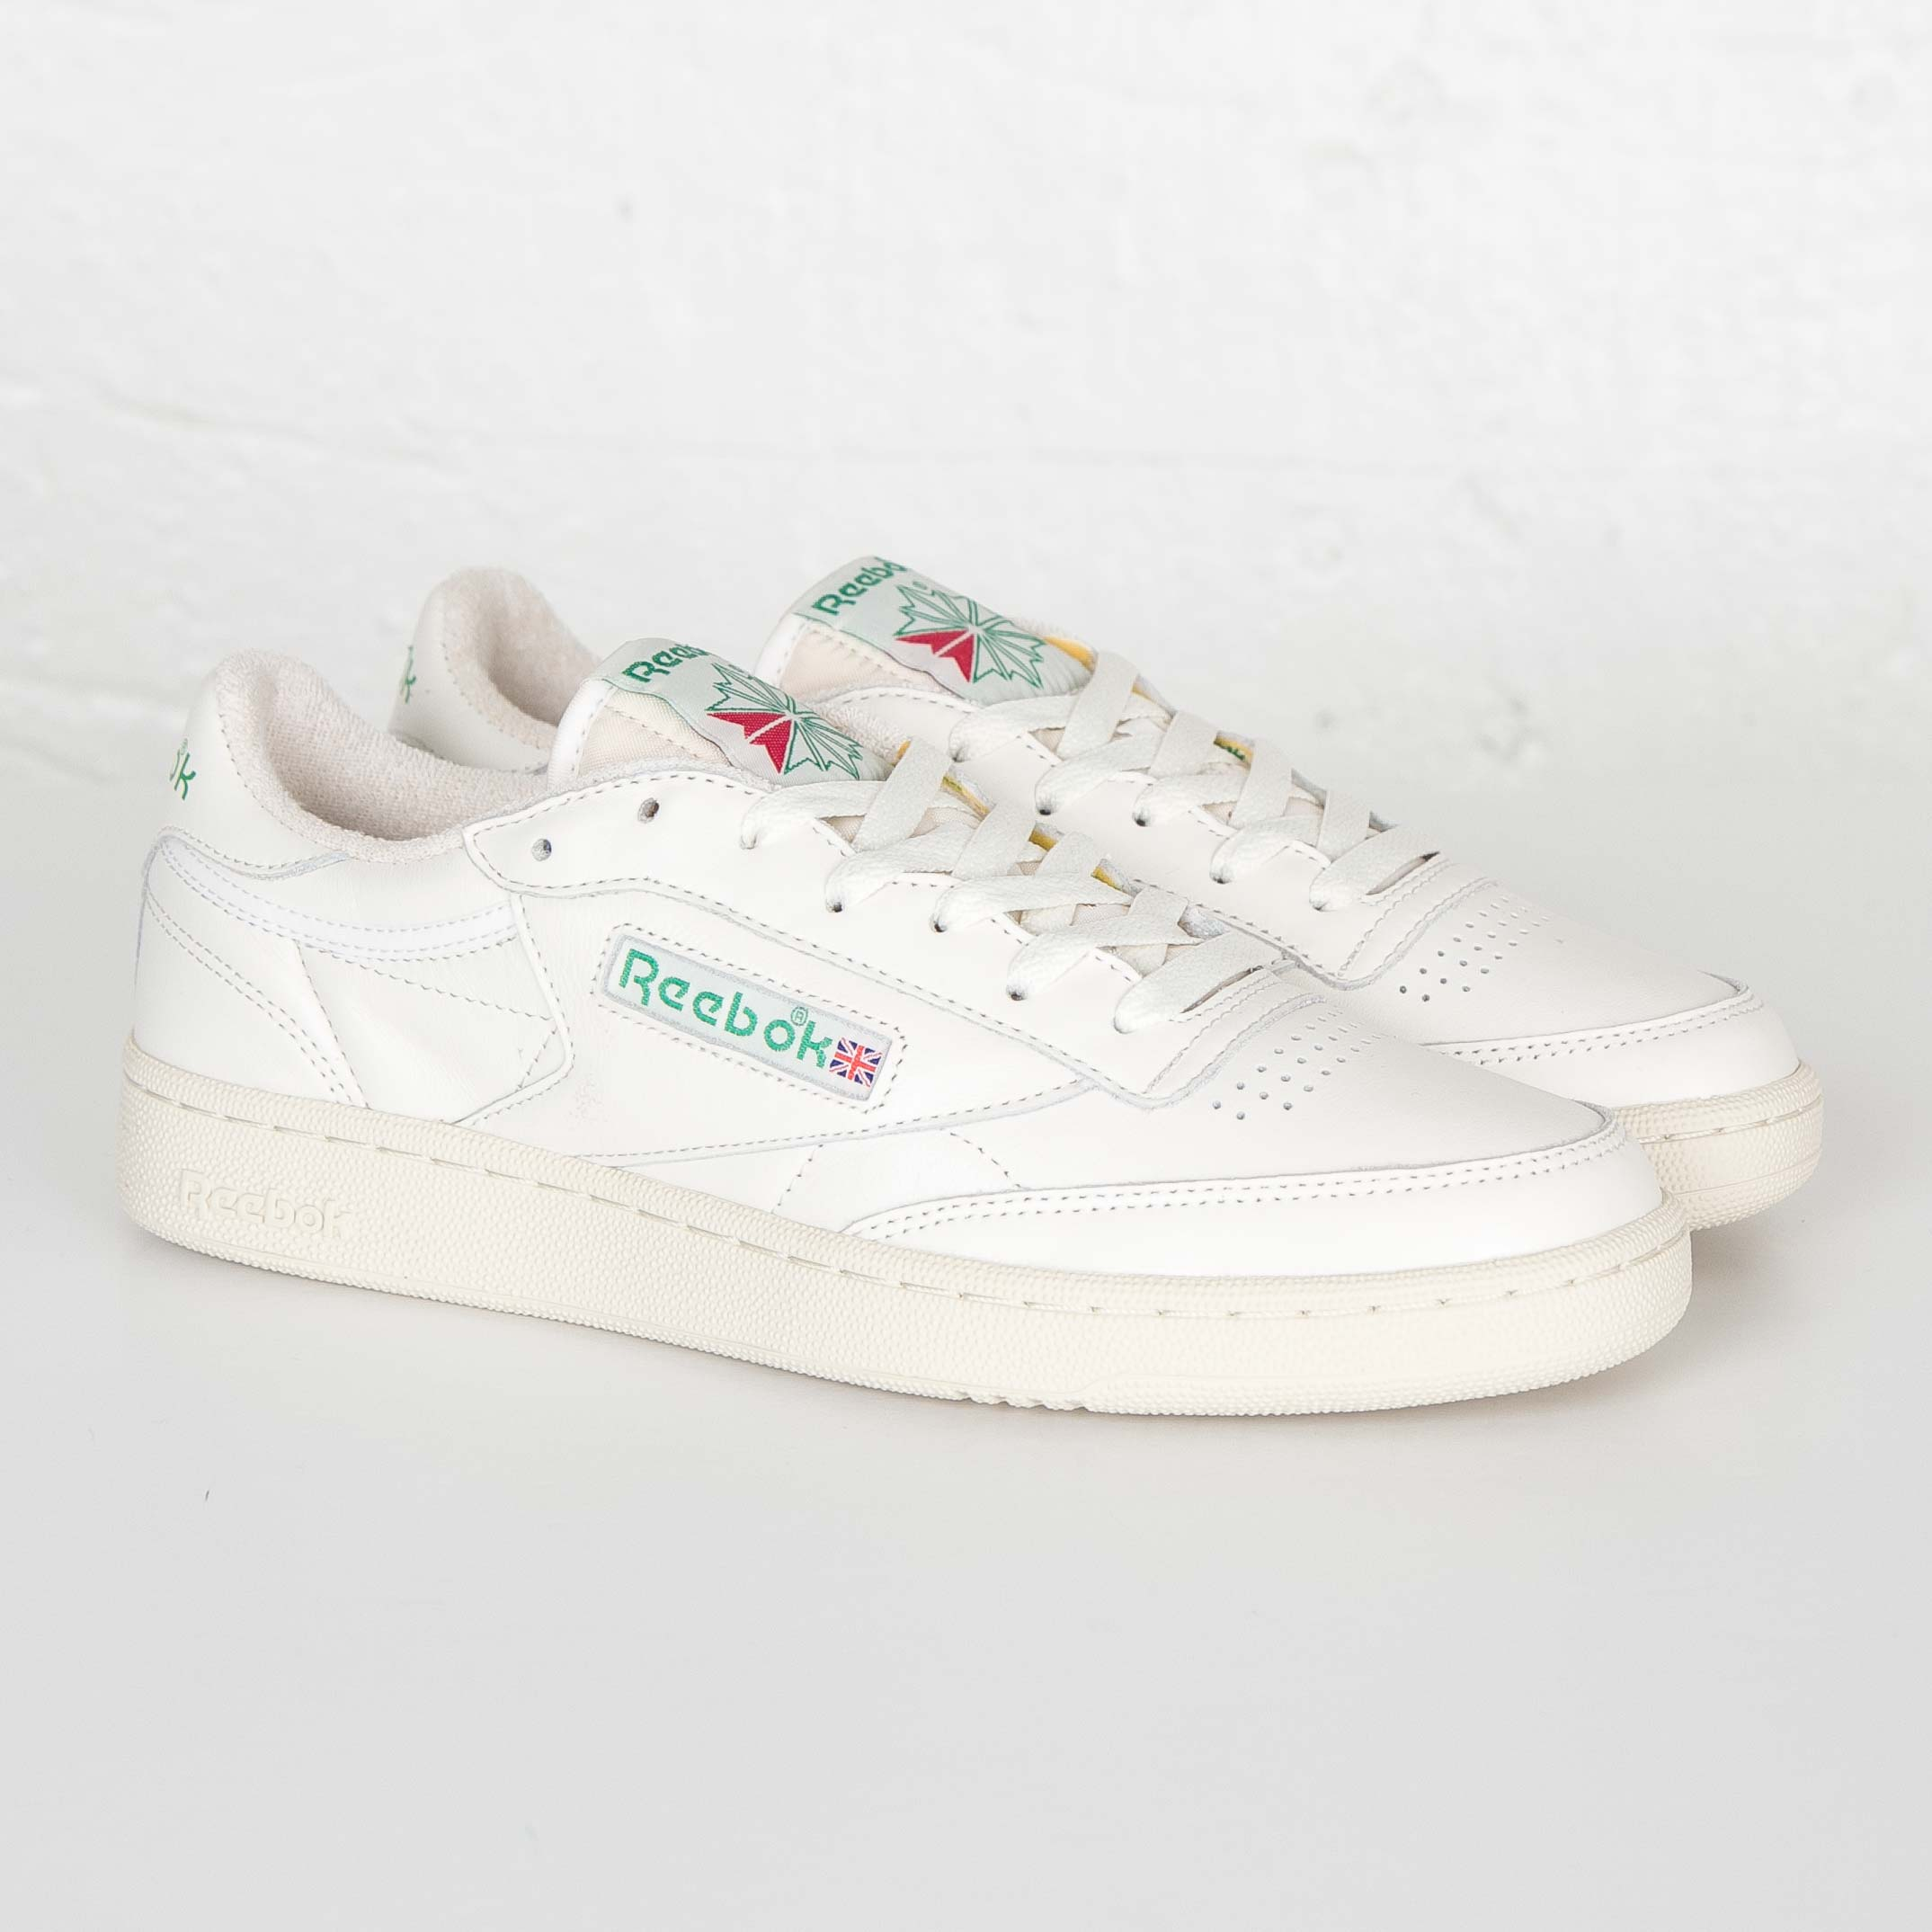 2f7adc490a4c1 Buy reebok club c 85 vintage court trainer